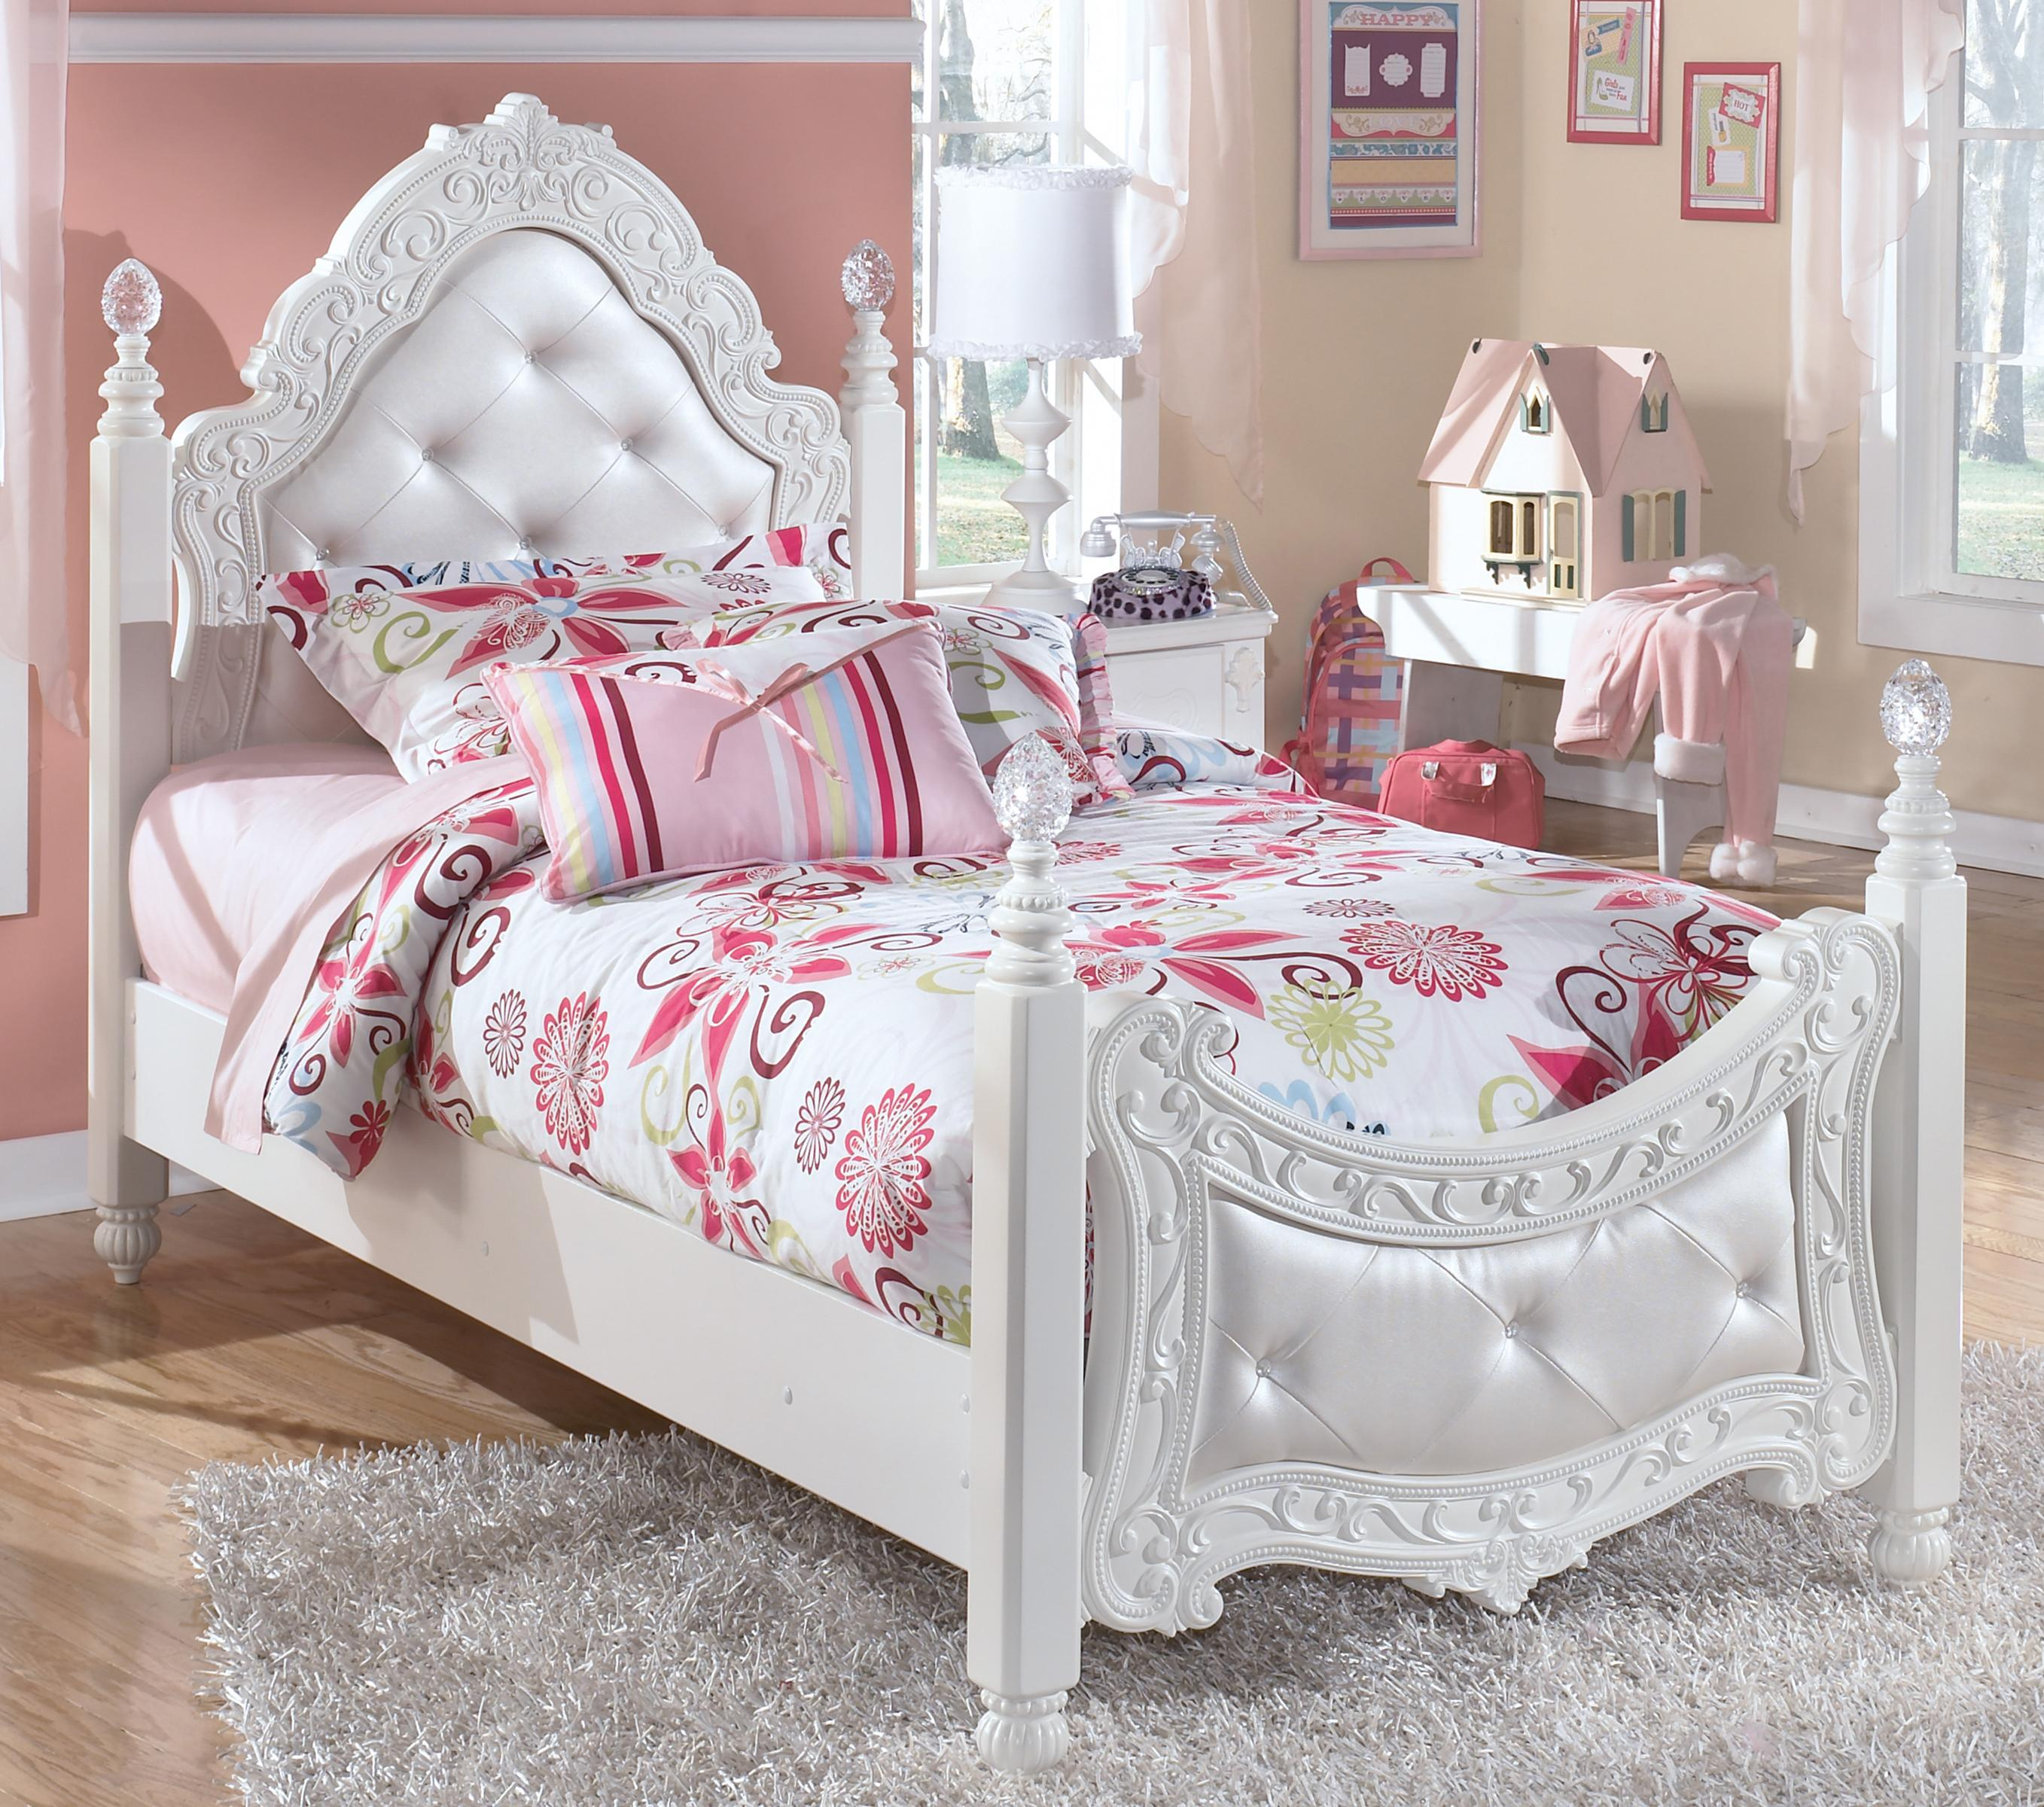 Twin Ornate Poster Bed With Tufted Headboard U0026 Footboard